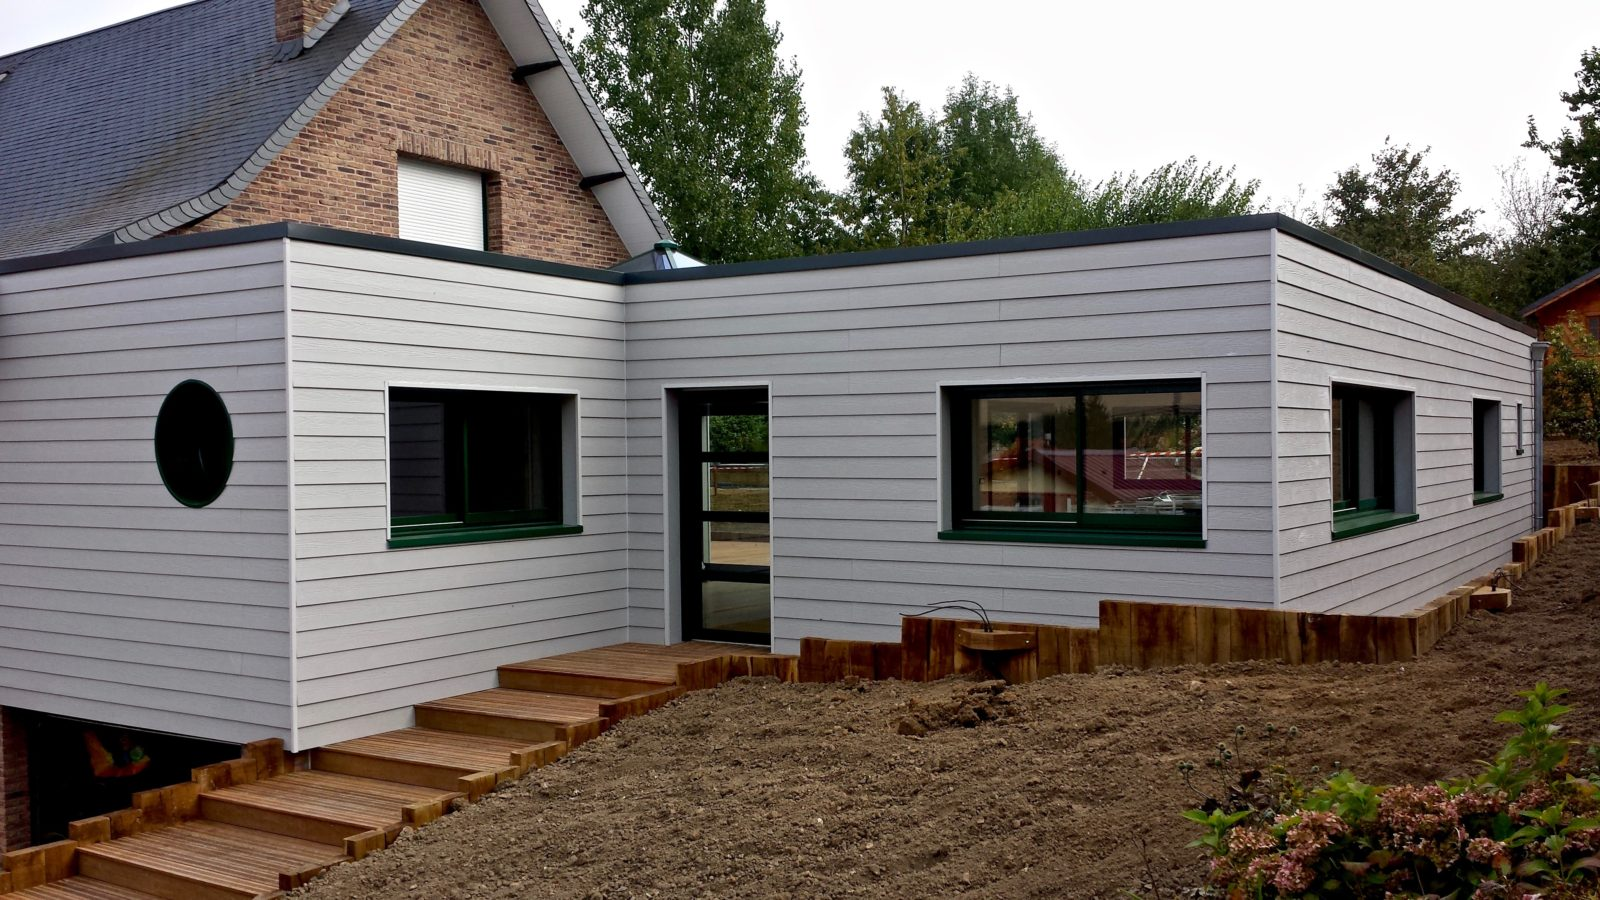 Extension en composite sureleveesur maison traditionnelle